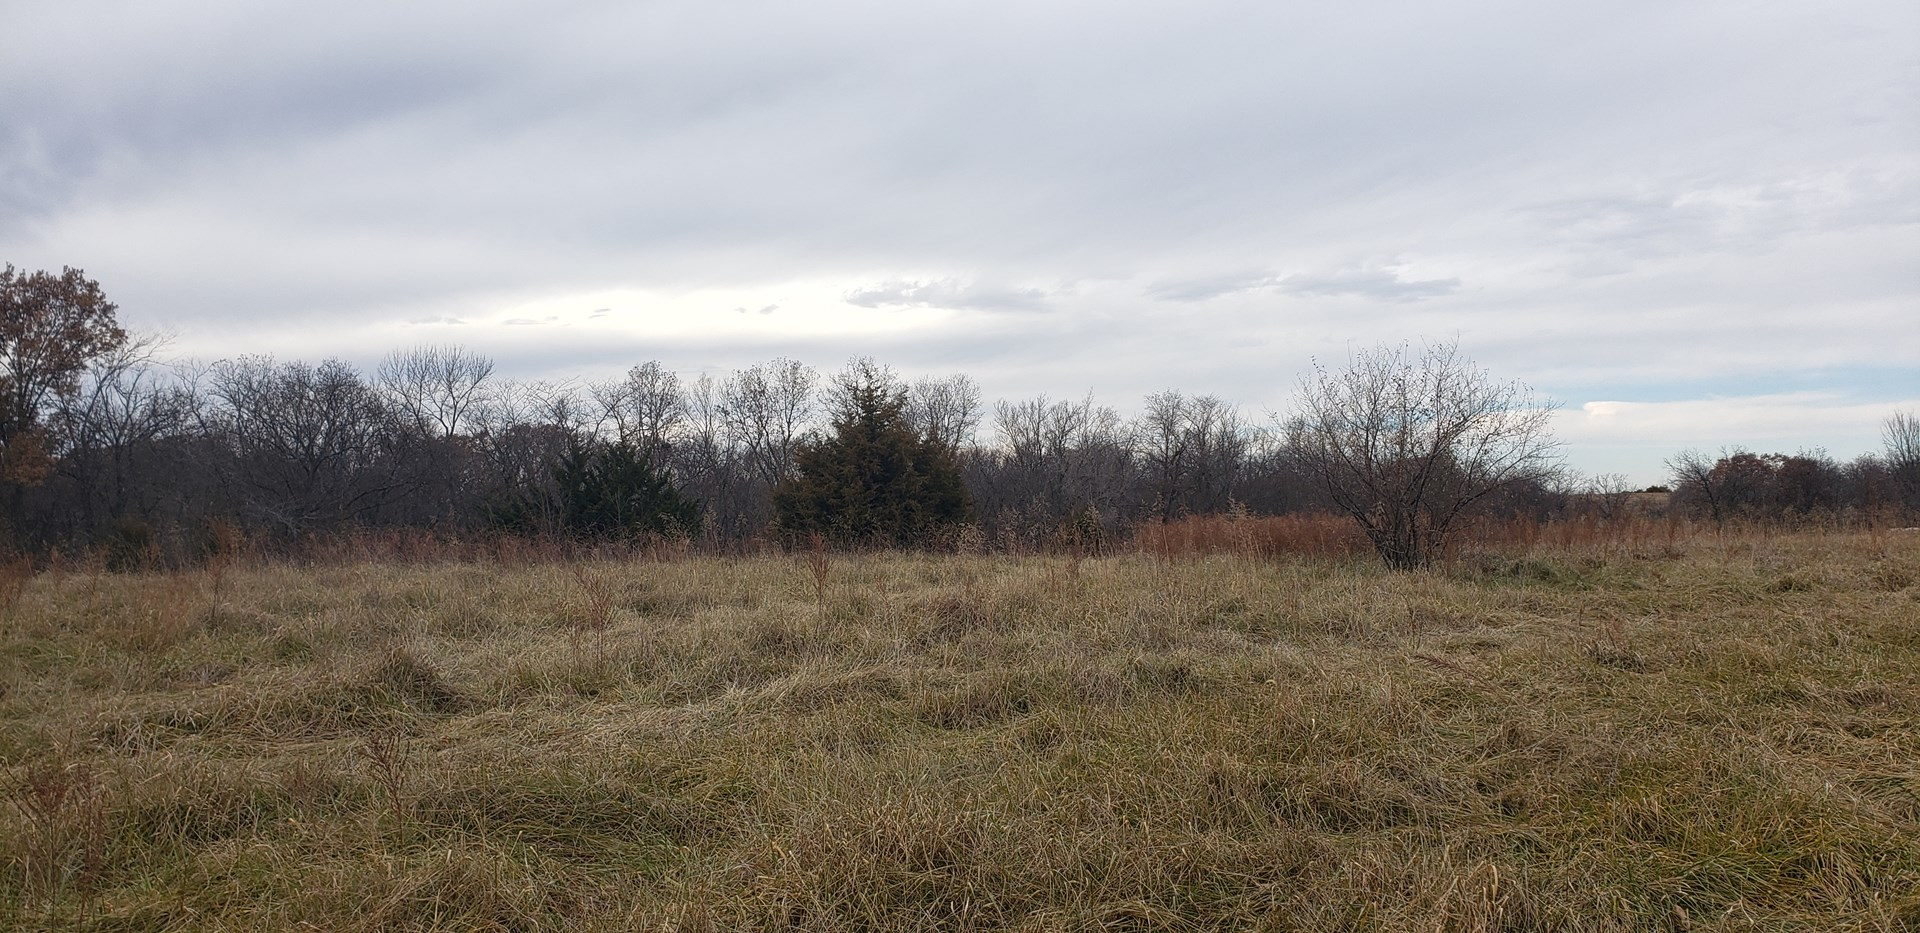 Multi-Use Land For Sale in Livingston County, Missouri